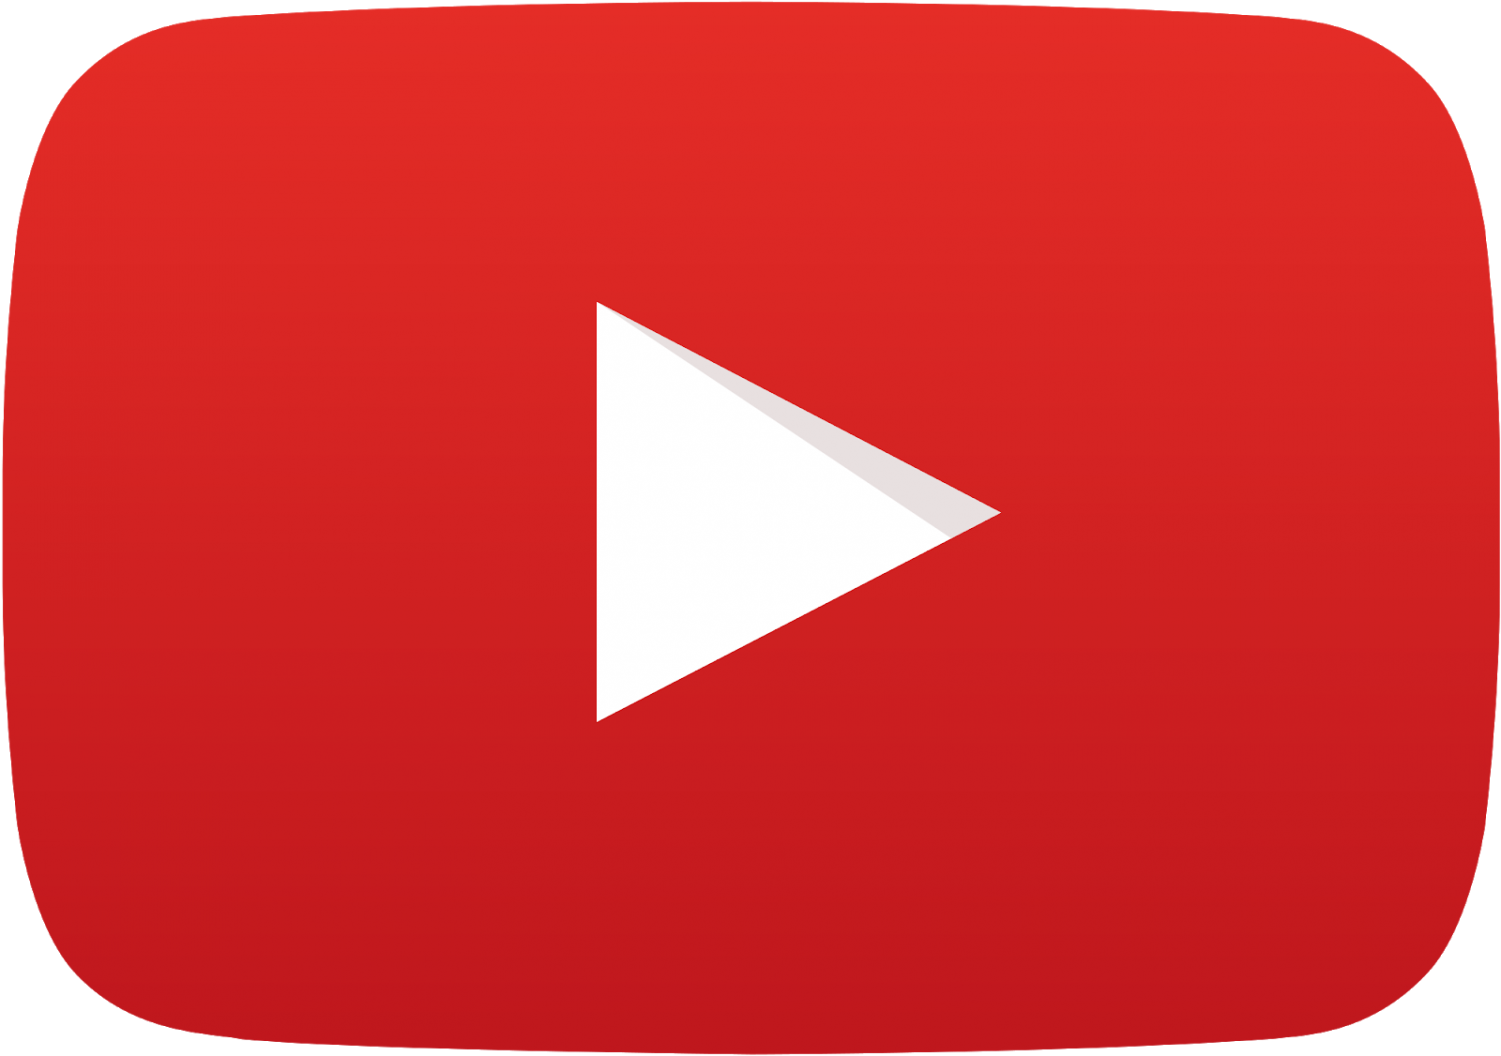 Photo Credit: https://commons.wikimedia.org/wiki/File:YouTube_play_buttom_icon_(2013-2017).svg